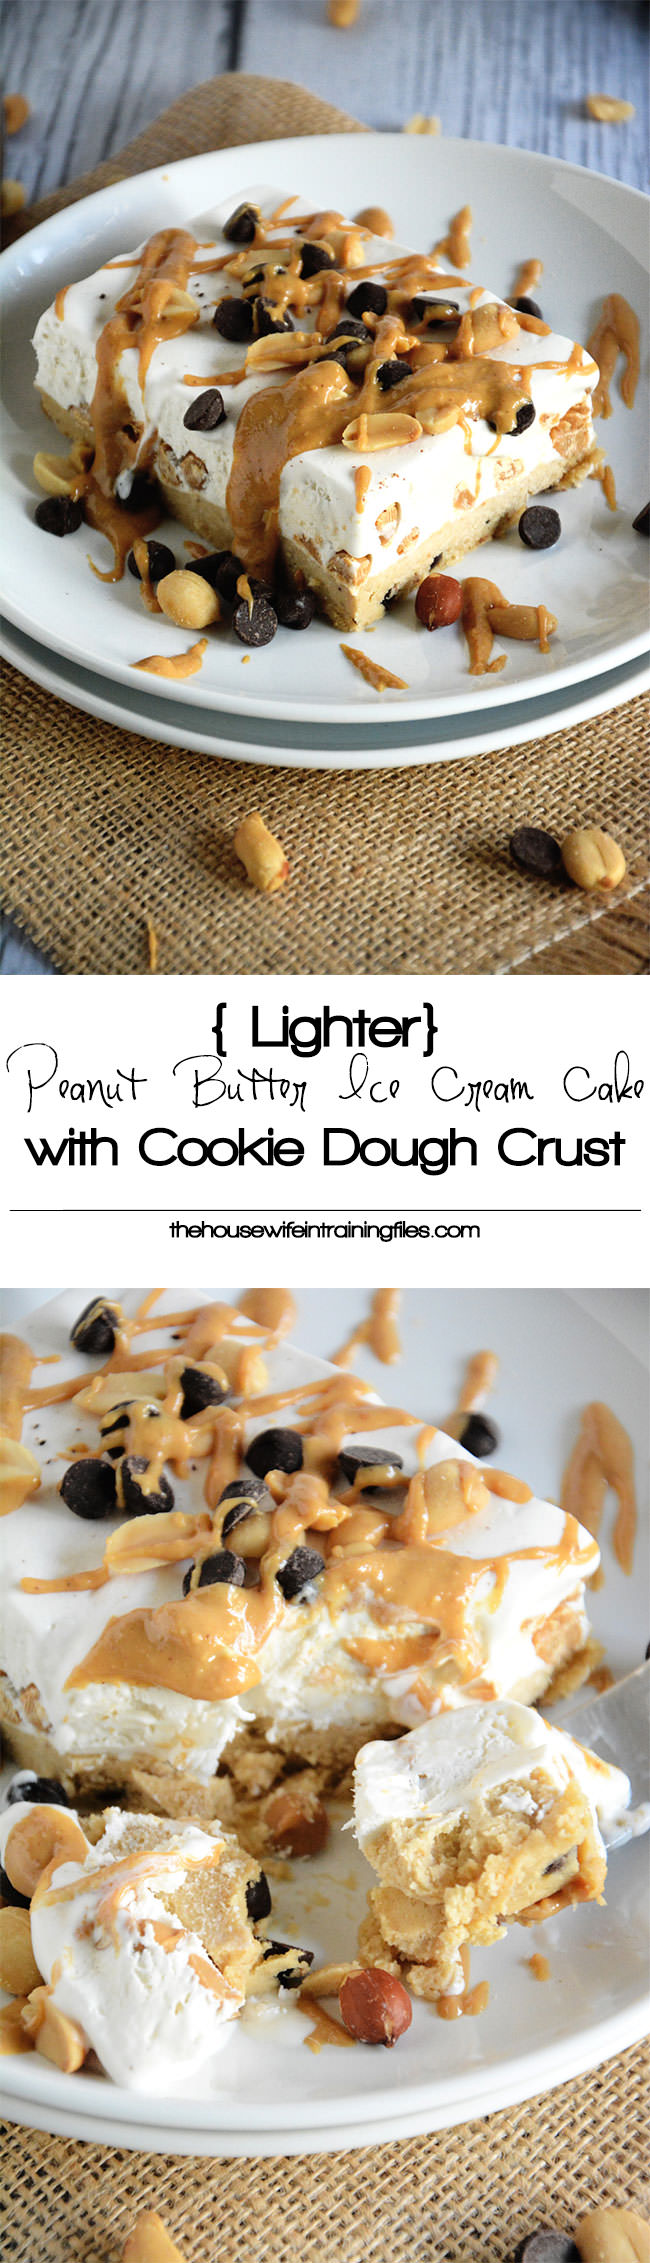 A creamy and rich peanut butter ice cream cake with a cookie dough base that will surprise everyone when they find out it is figure friendly!